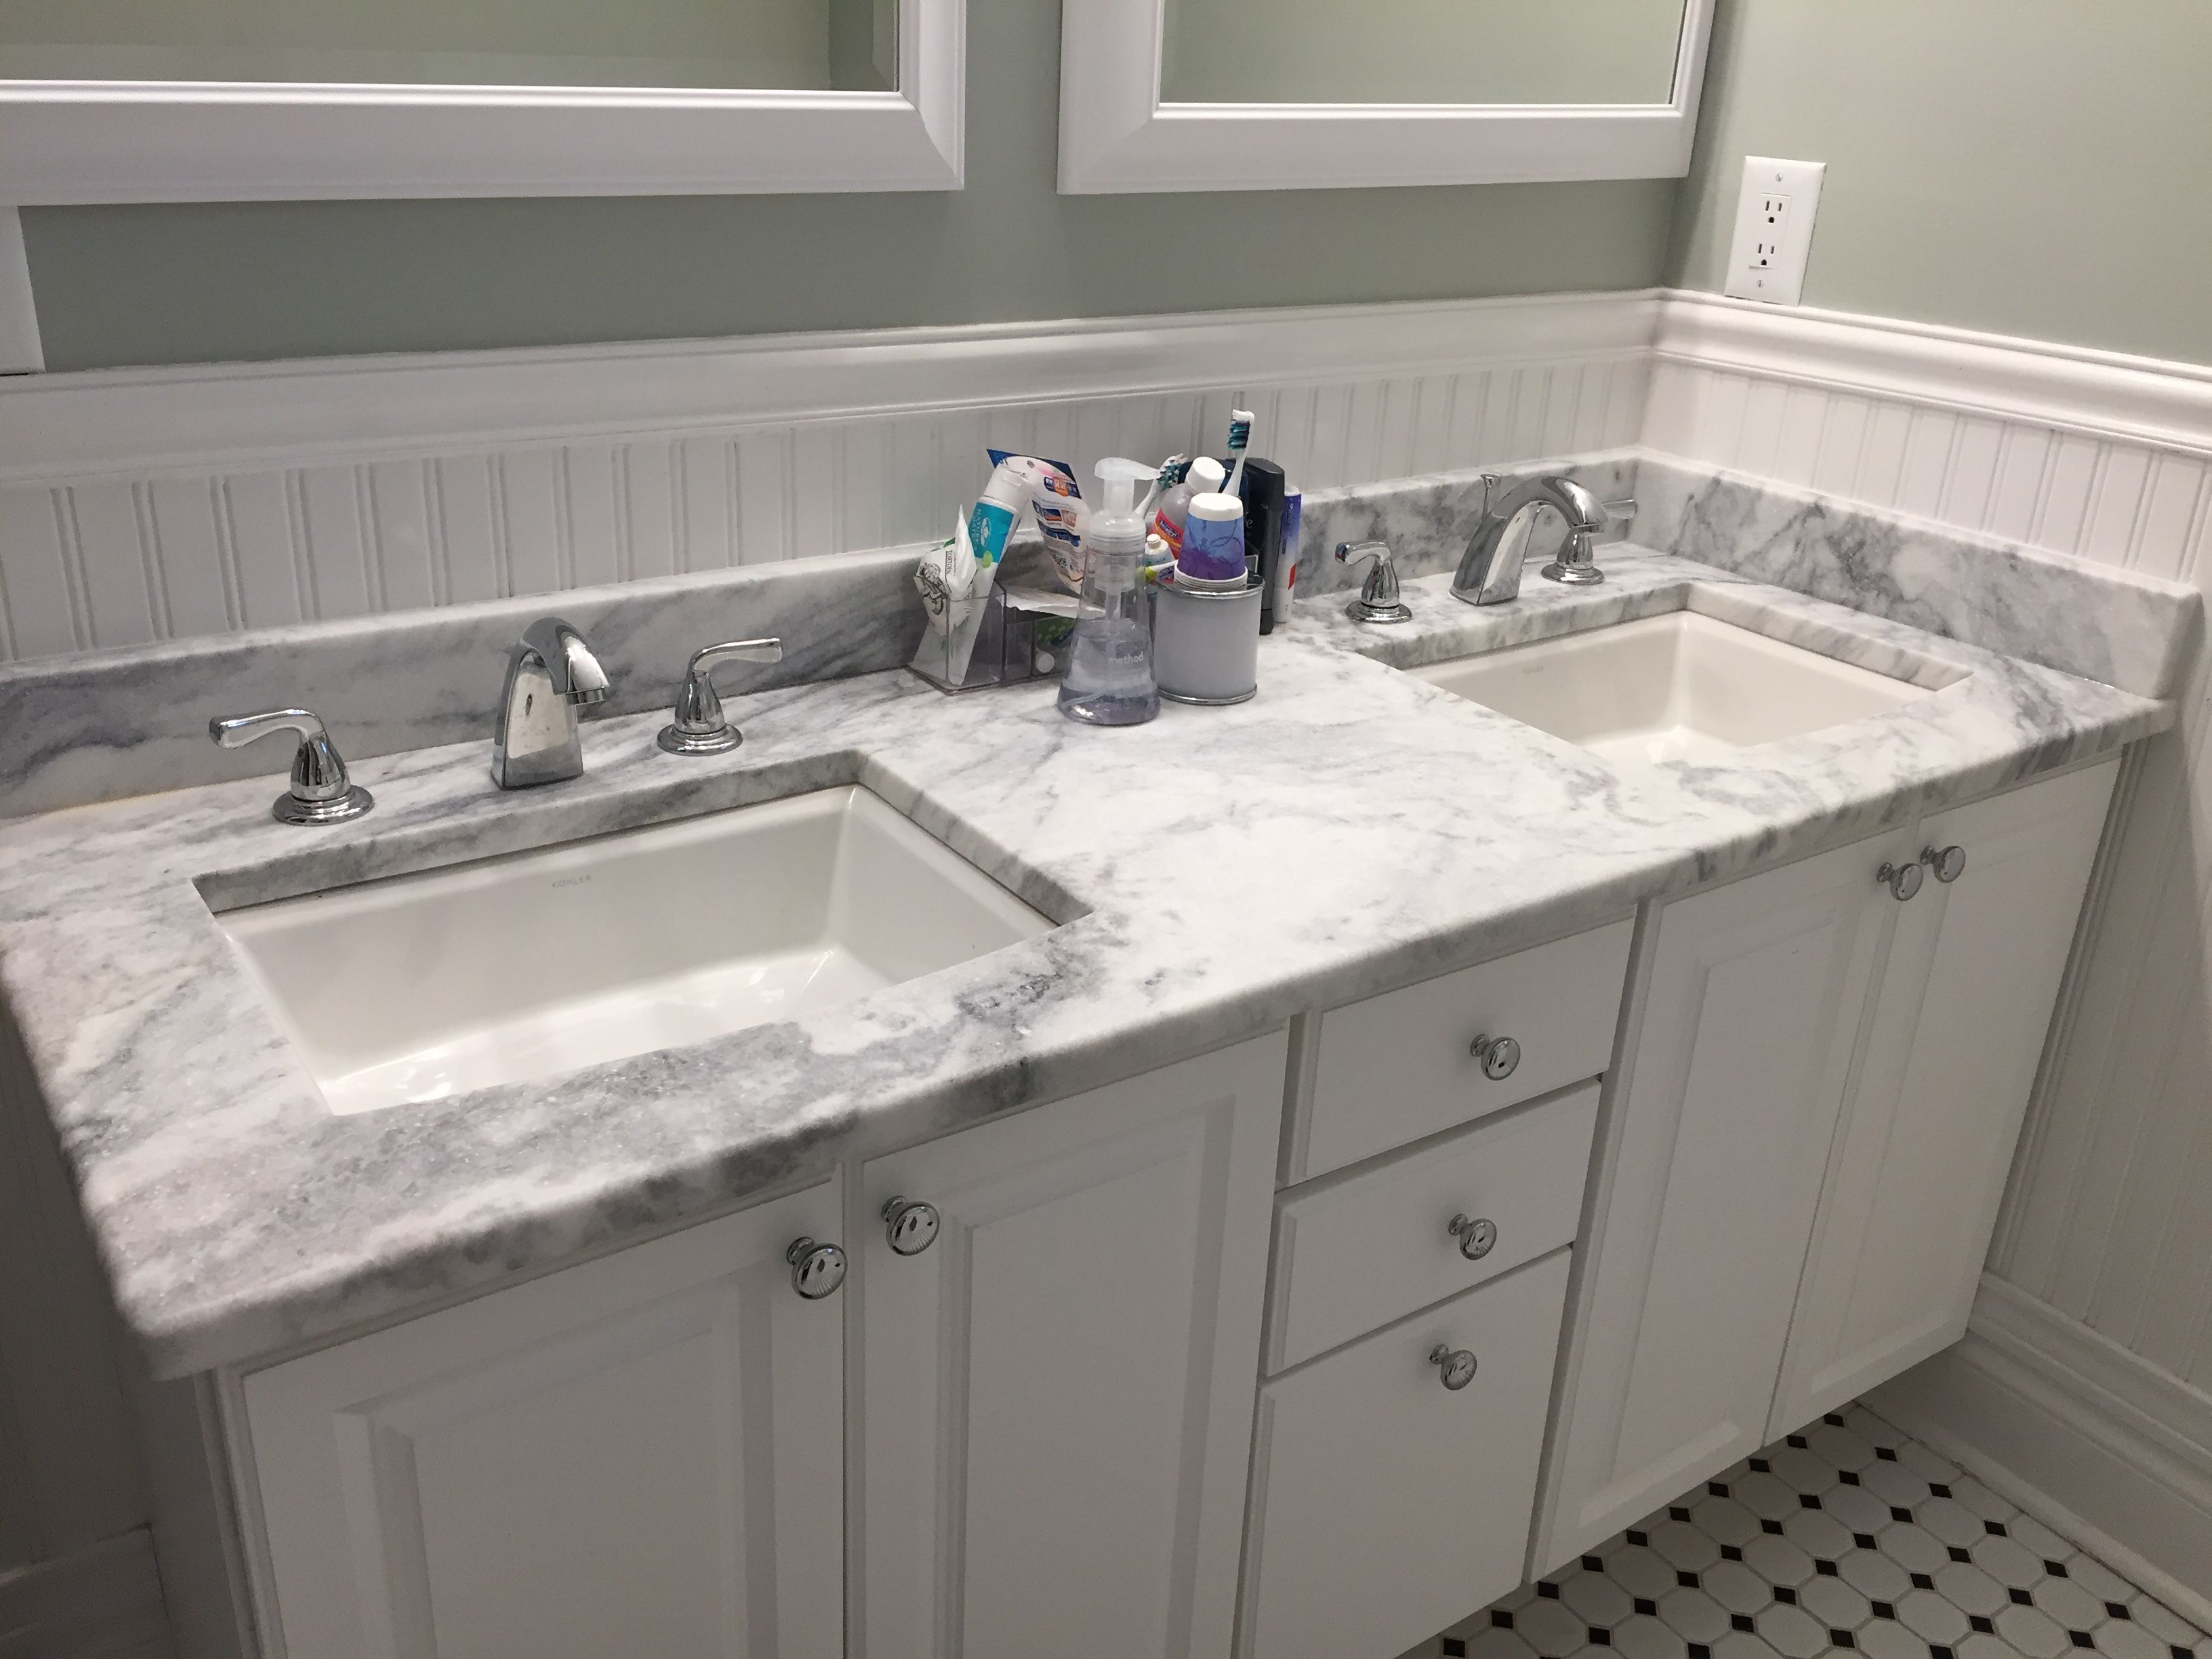 mont blanc honed quartzite vanity countertop in a traditional hall bathroom with beadboard bathroom vanity